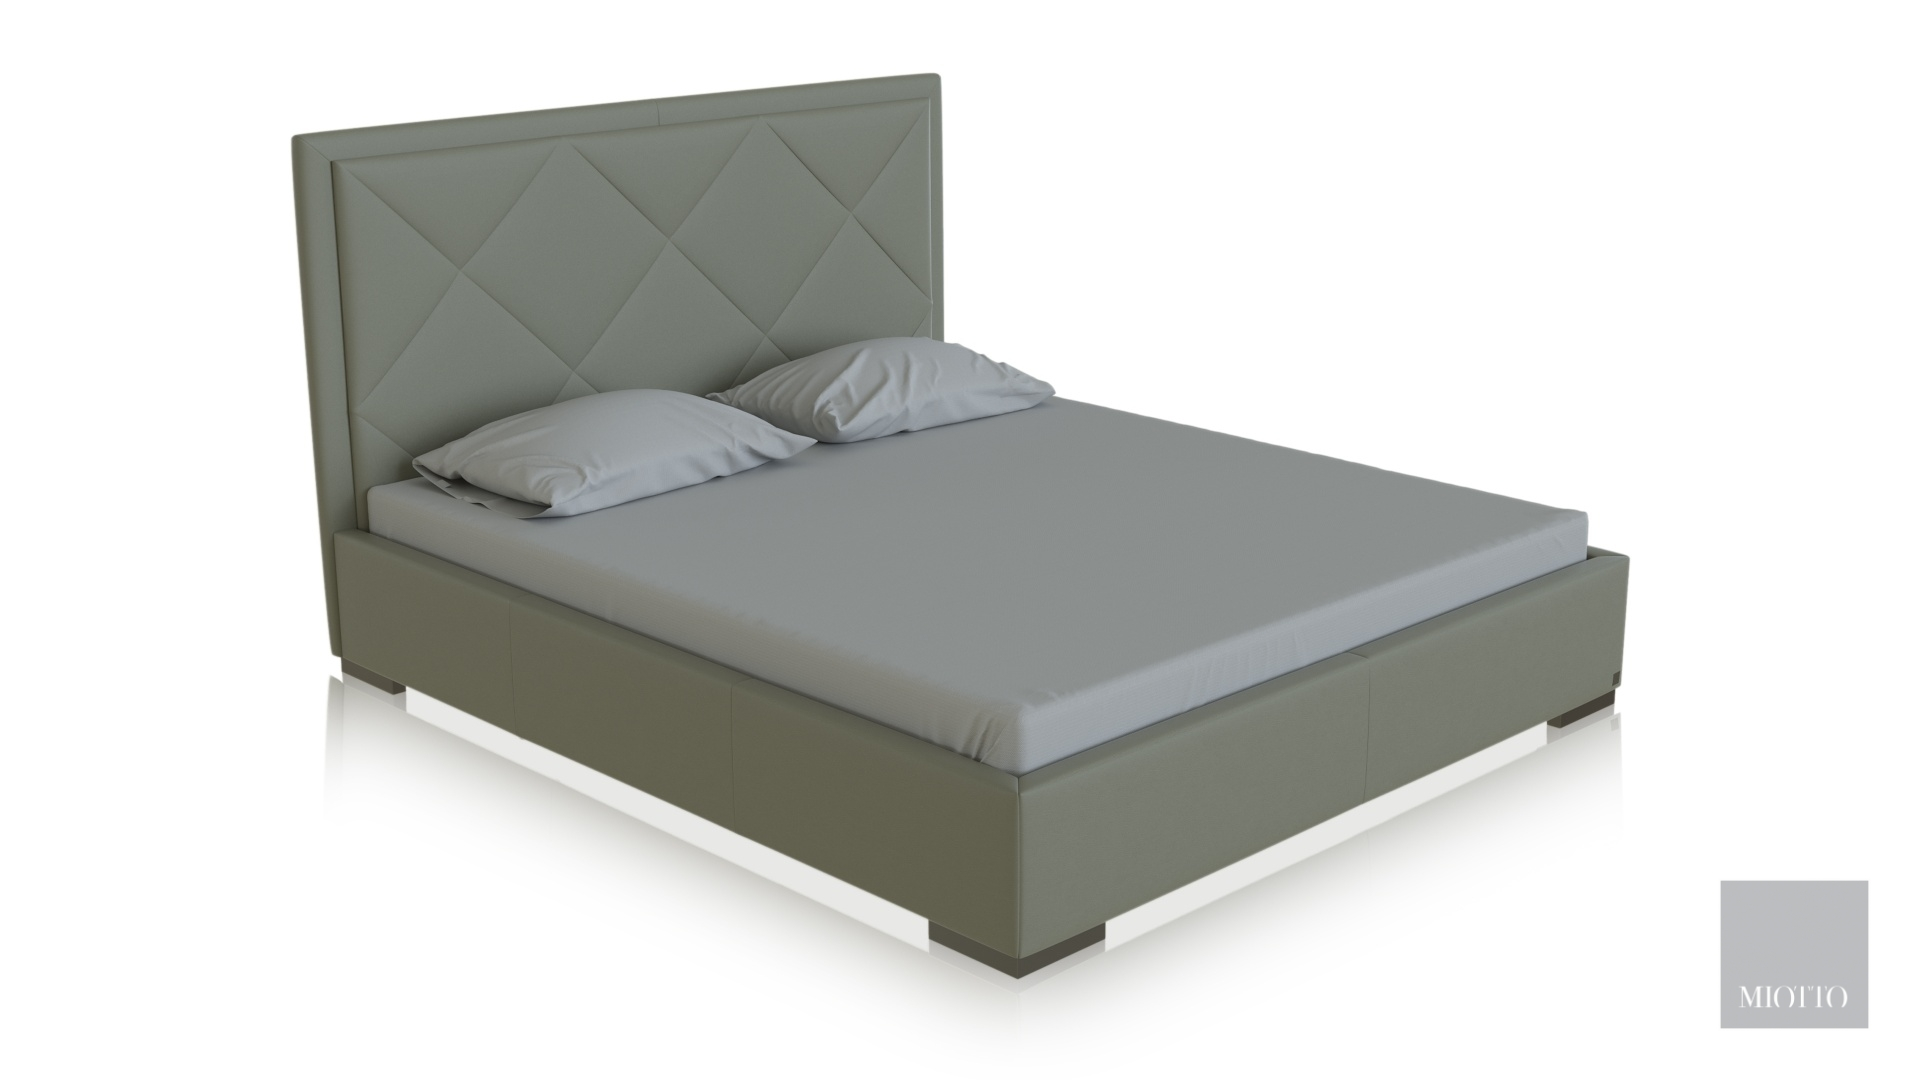 miotto_felina bed taupe